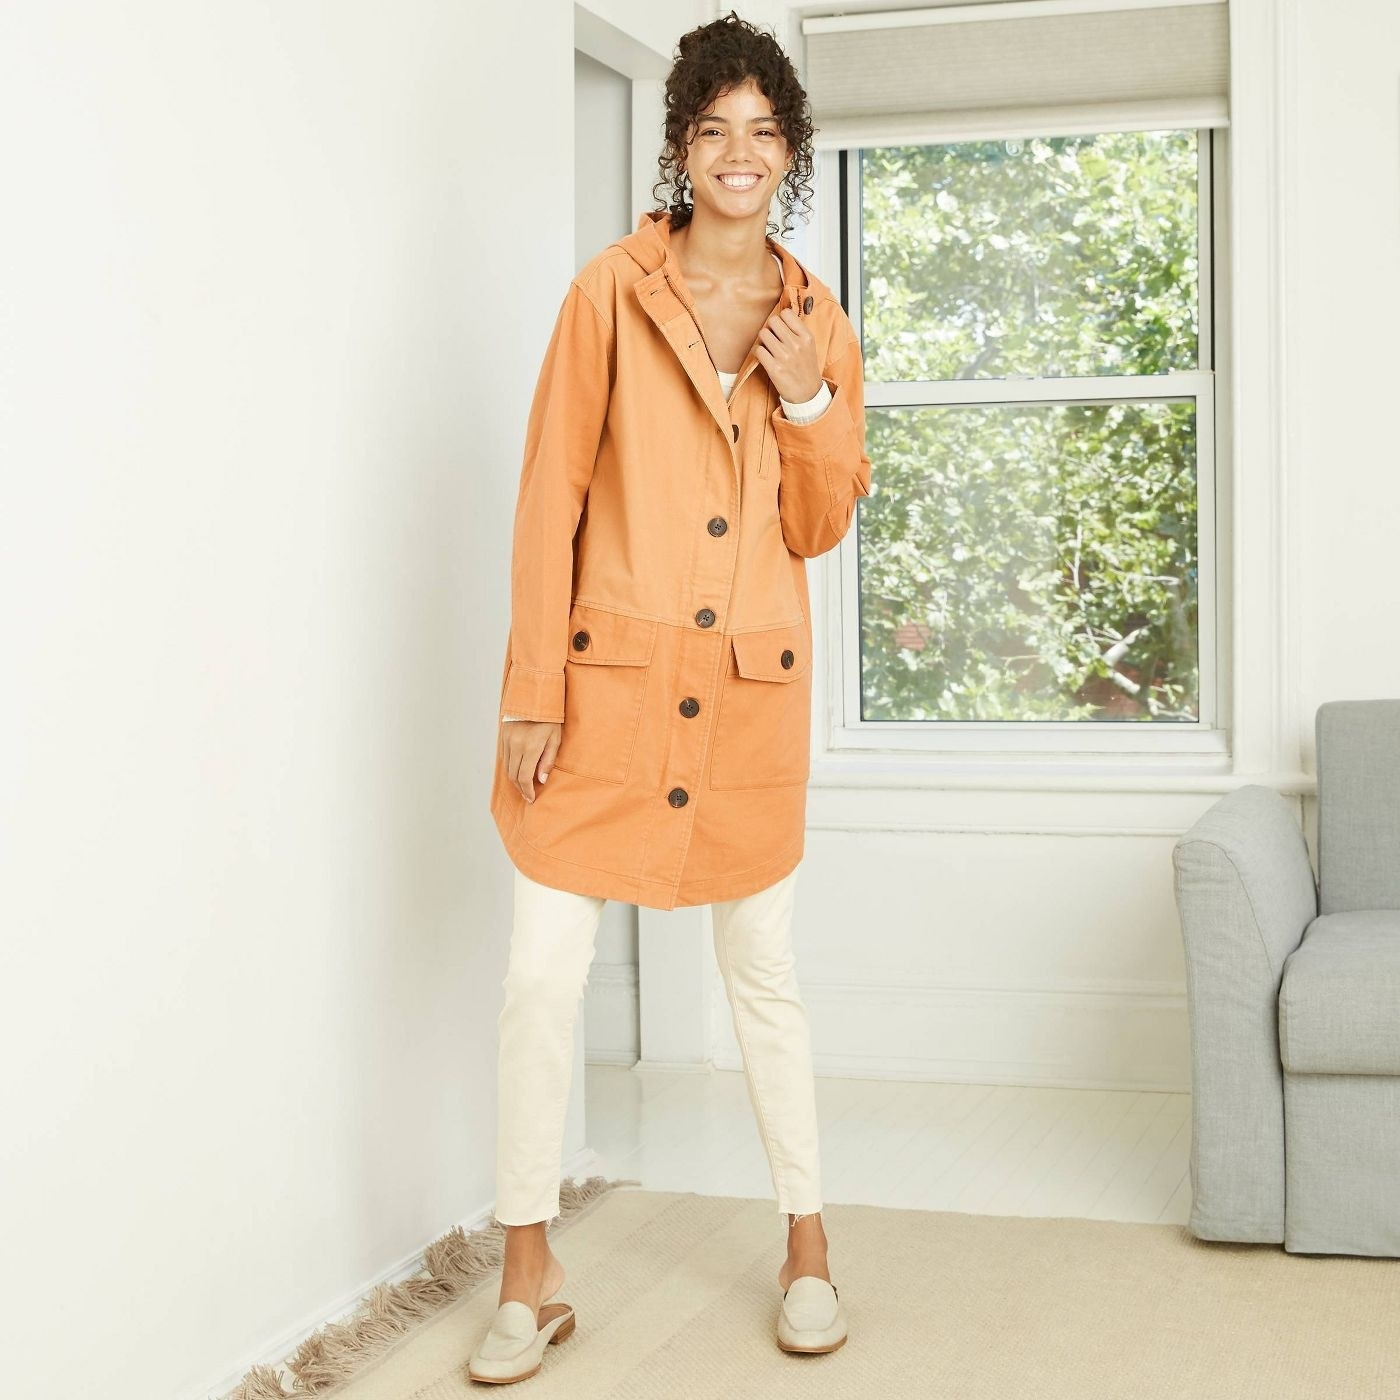 Model in orange mid length colorblock jacket